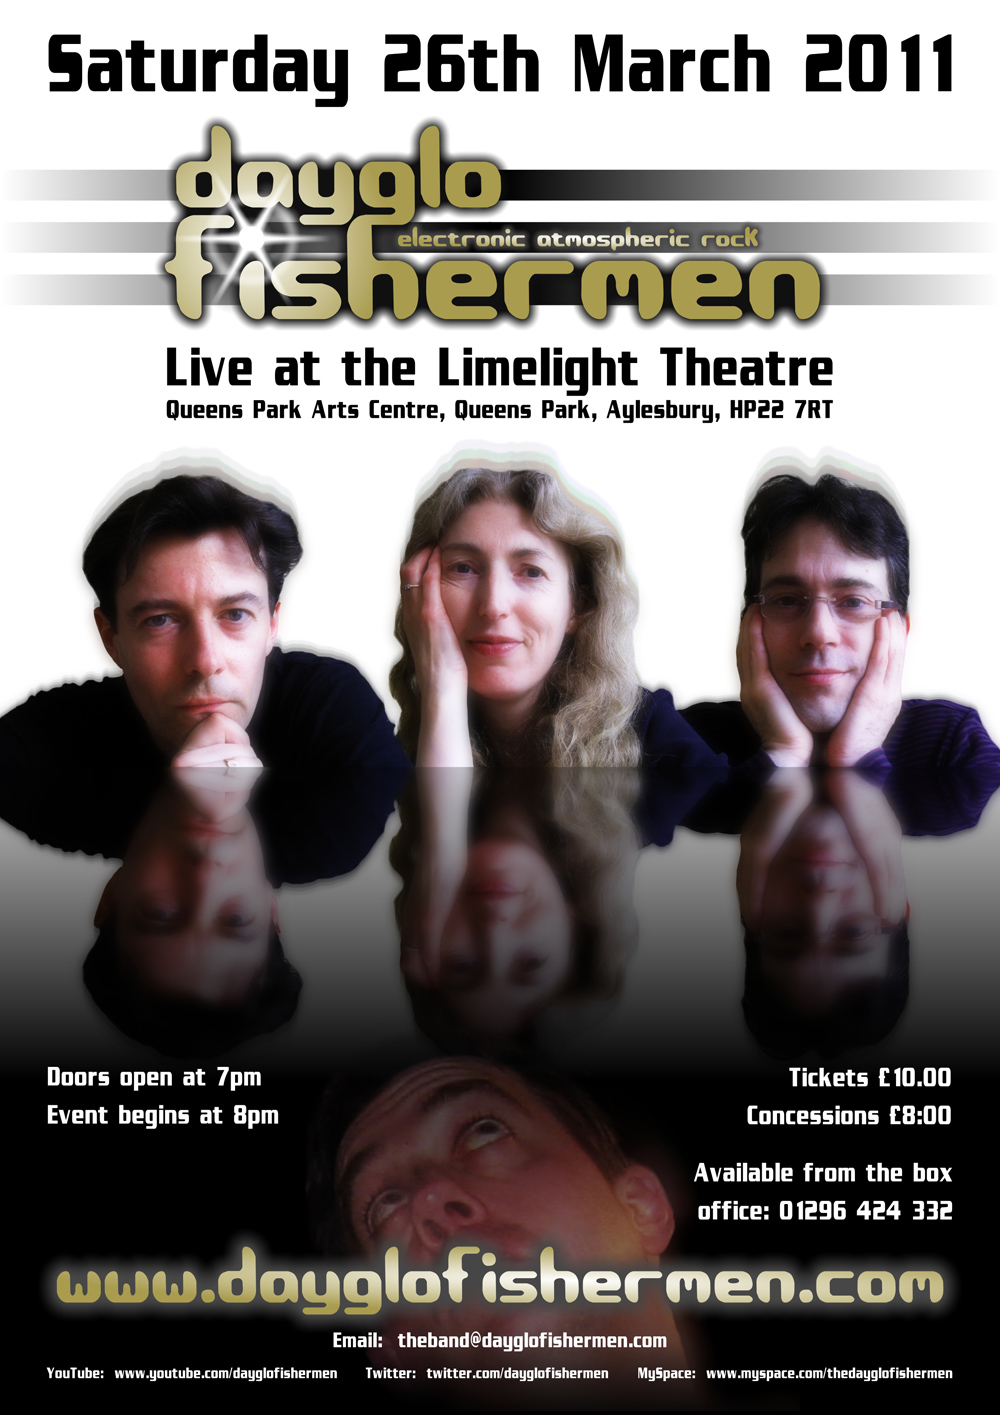 Limelight Theatre concert poster 2011